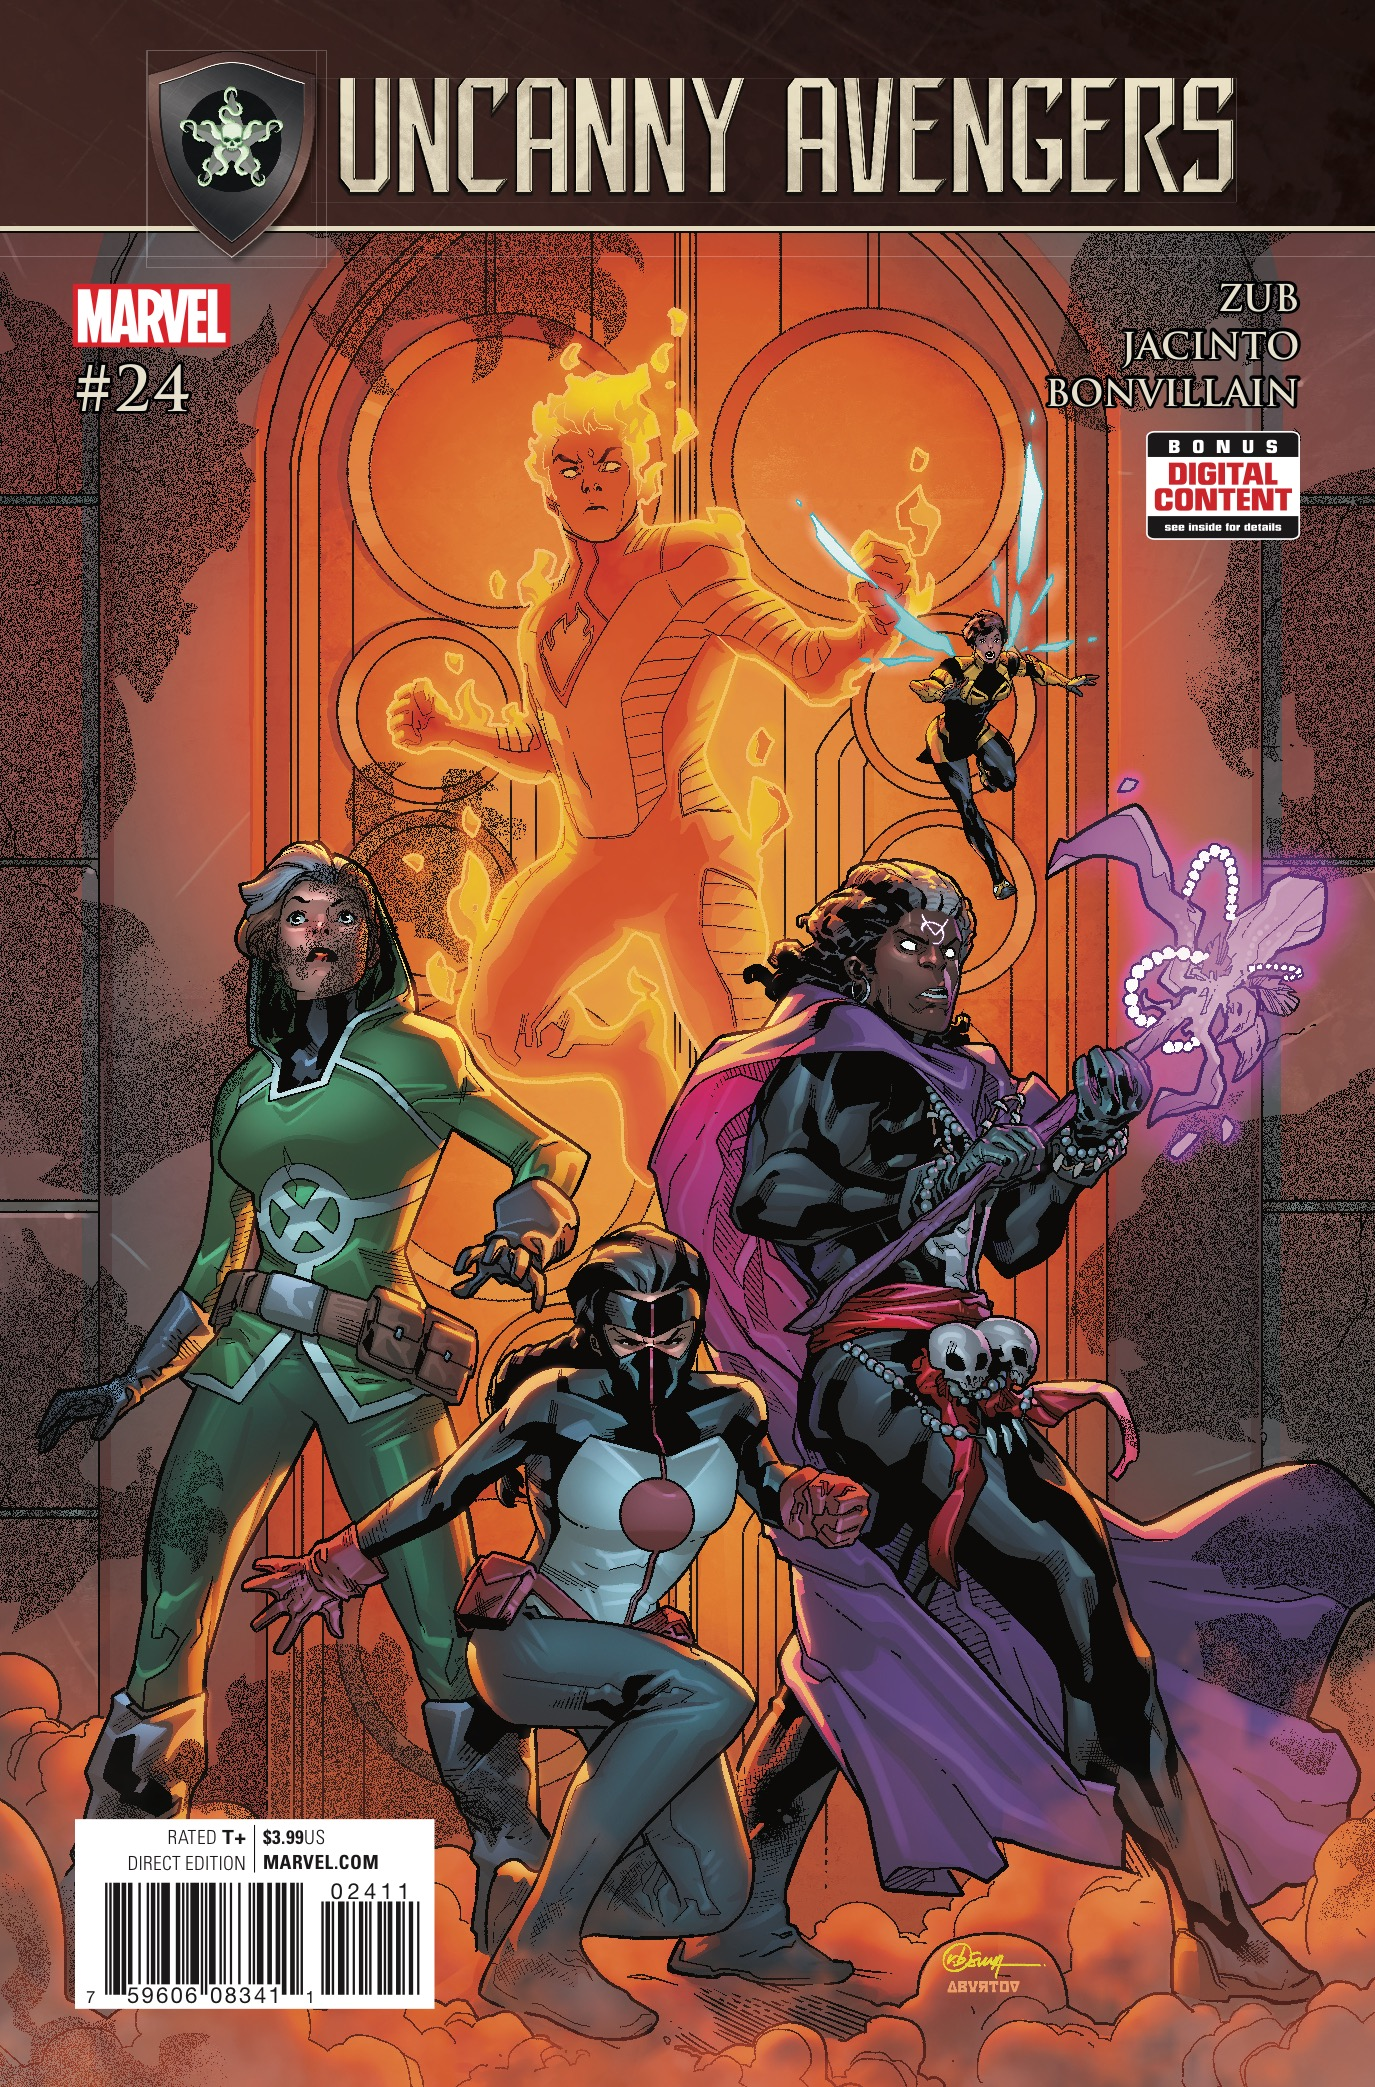 Marvel Preview: Uncanny Avengers #24